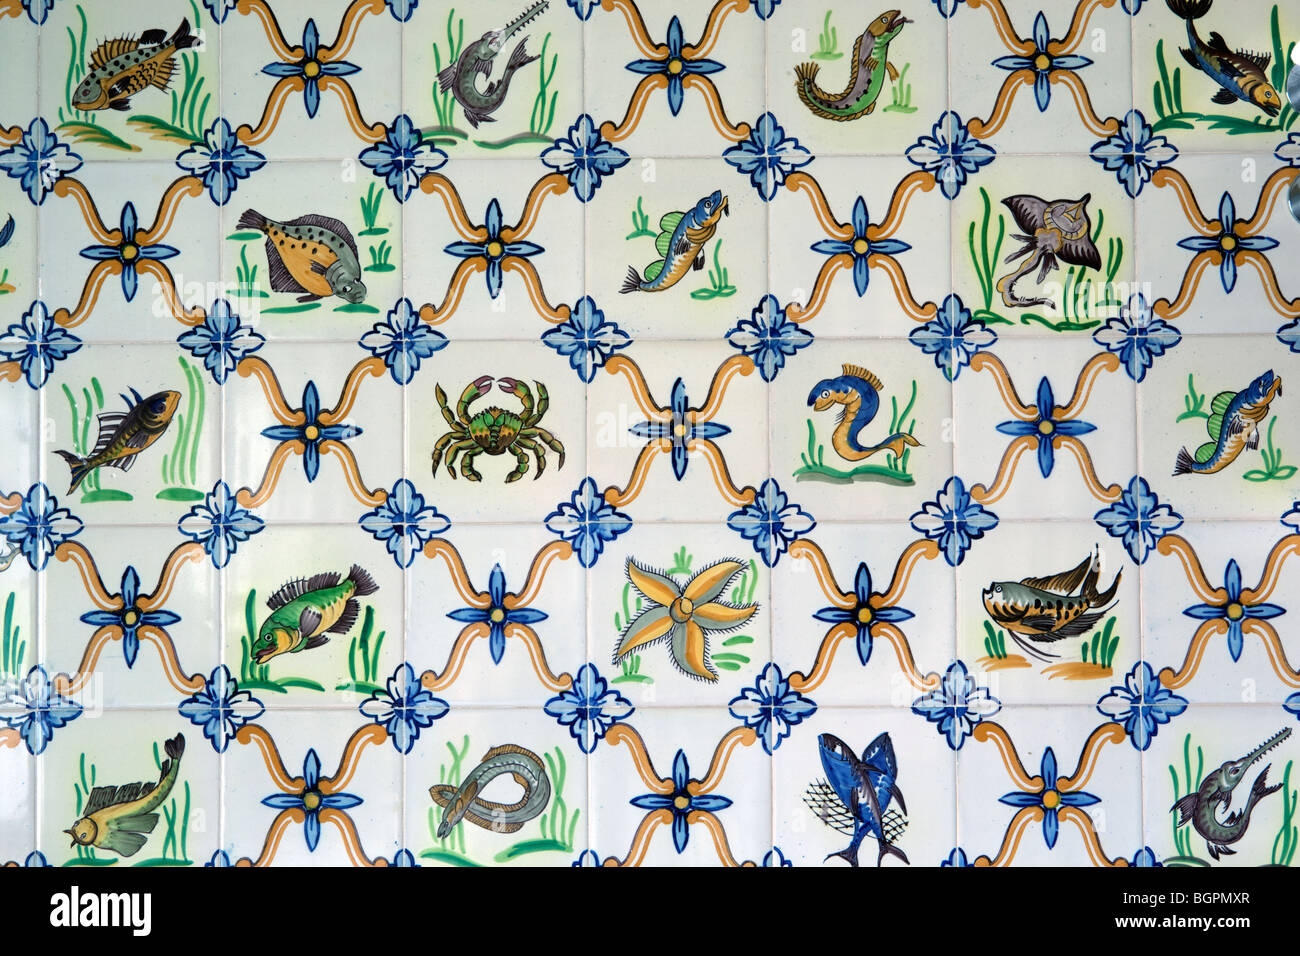 Hand Painted Bathroom Tiles With Fish Theme Stock Photo 27544239